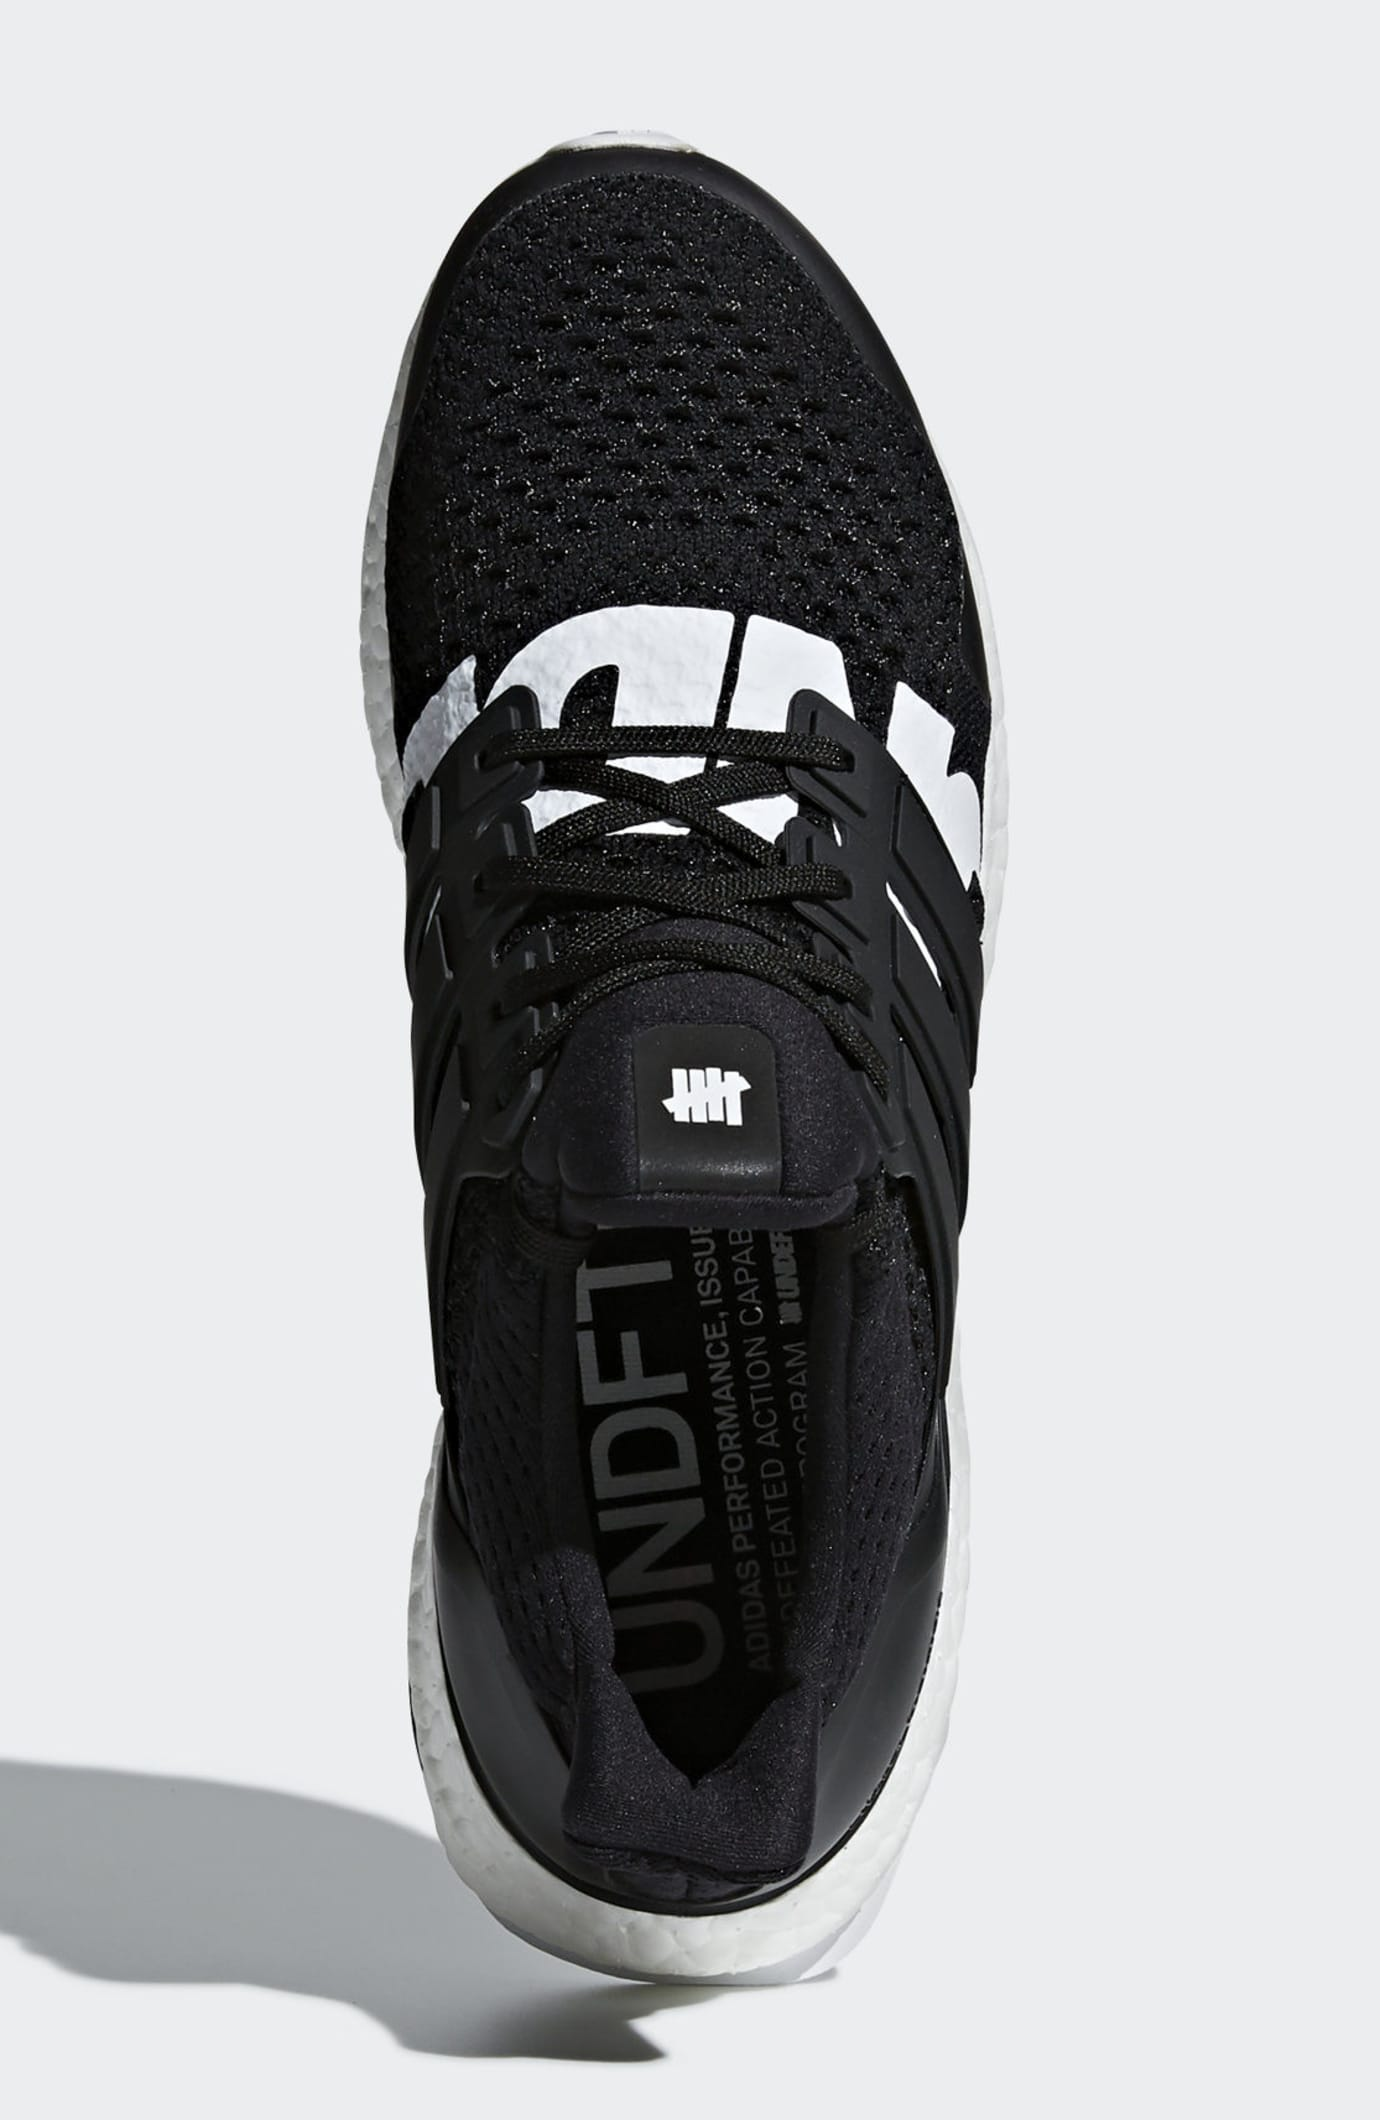 Undefeated x Adidas Ultra Boost B22480 (Top)